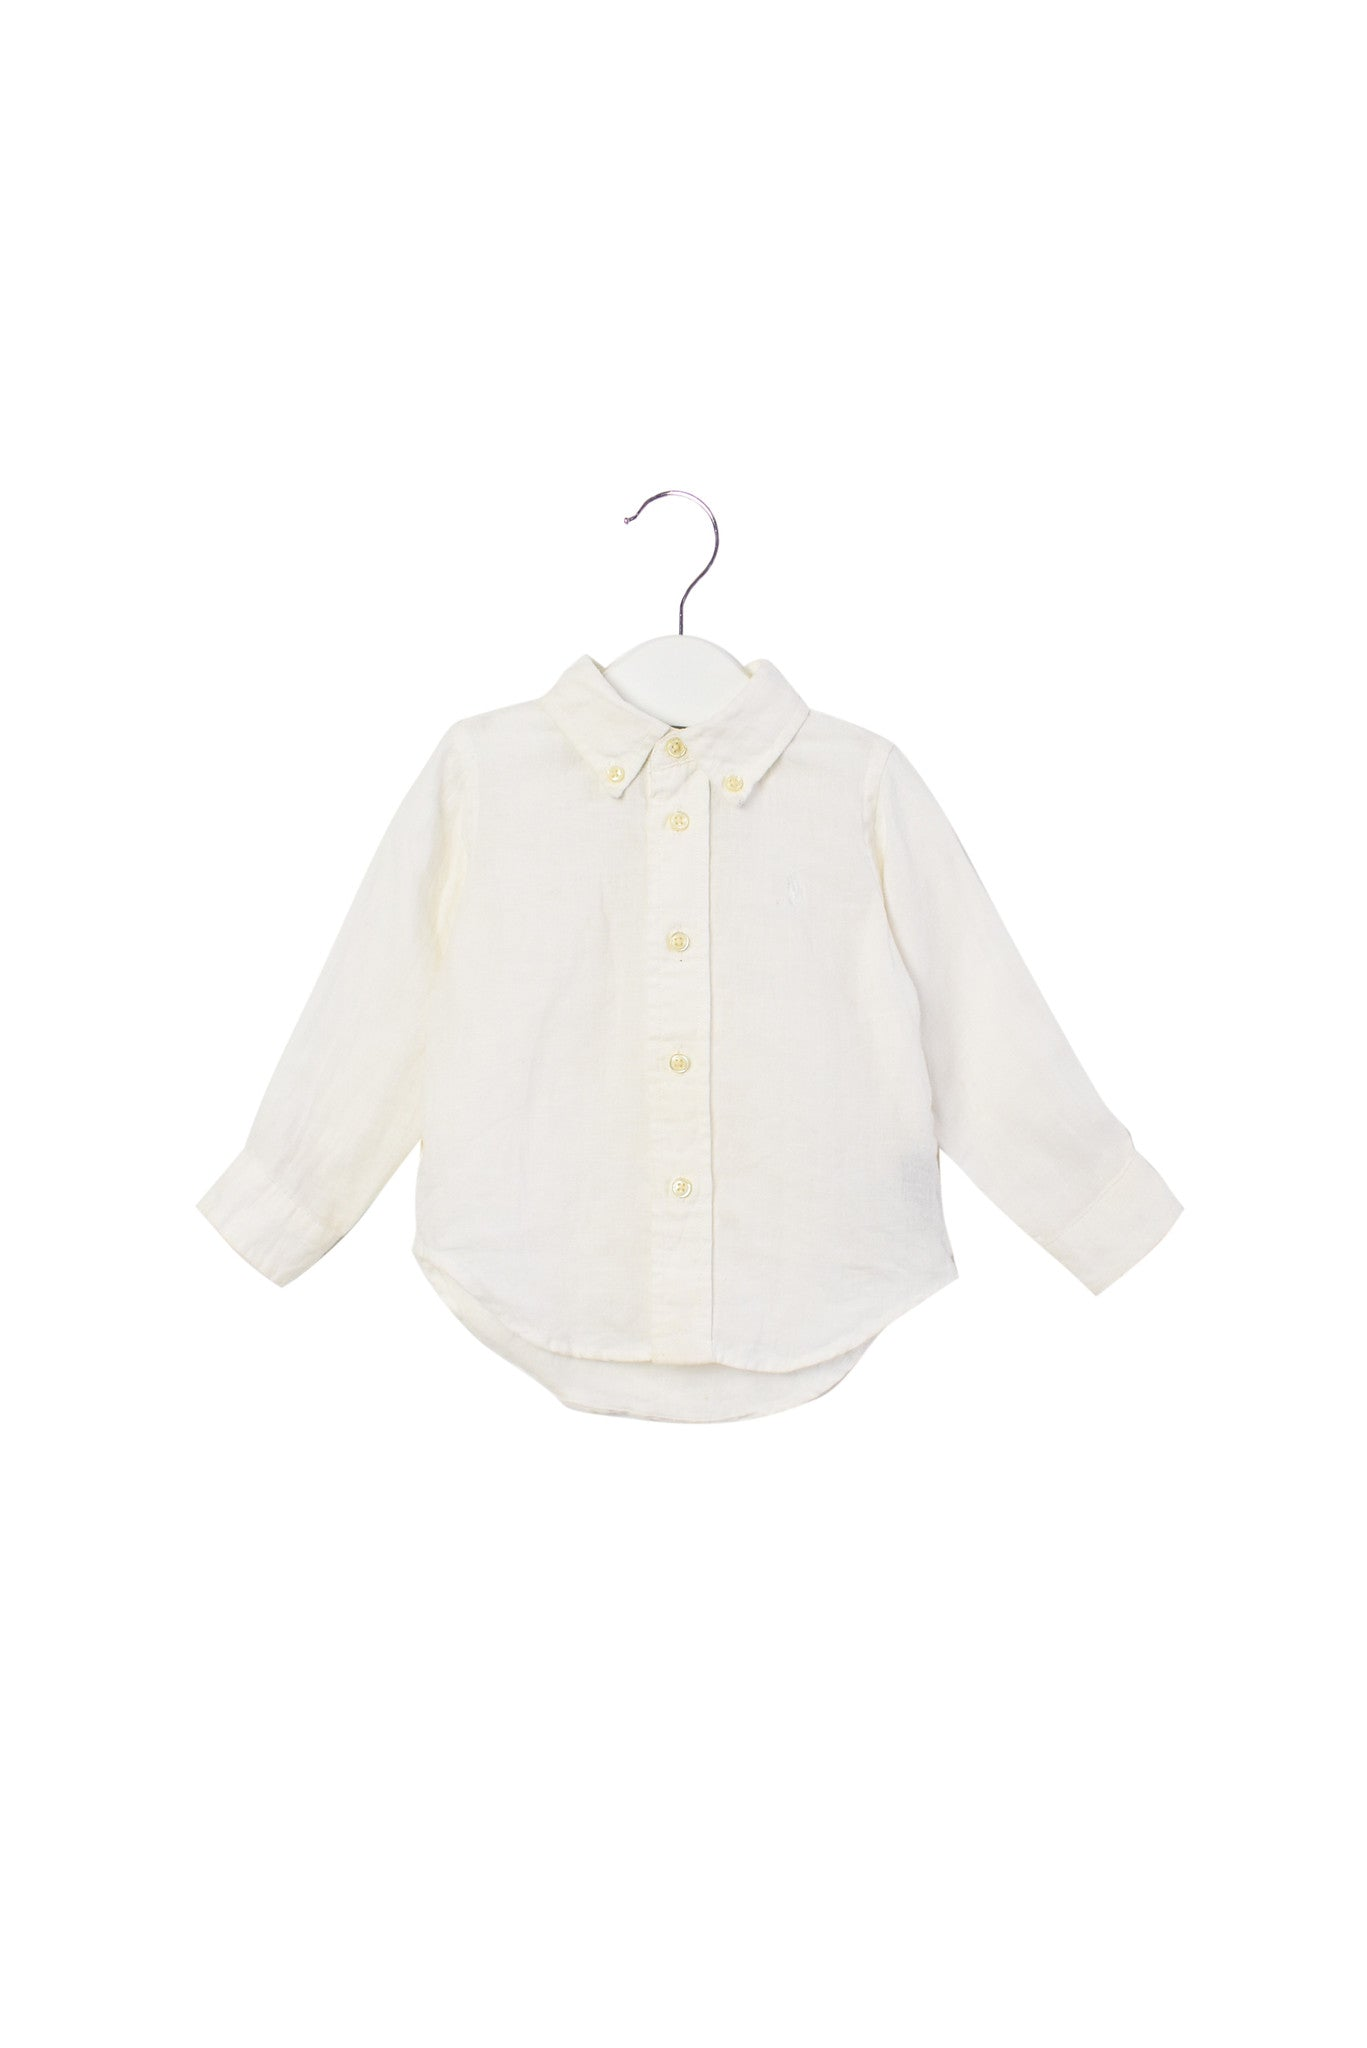 10003536 Ralph Lauren Baby~Shirt 12M at Retykle